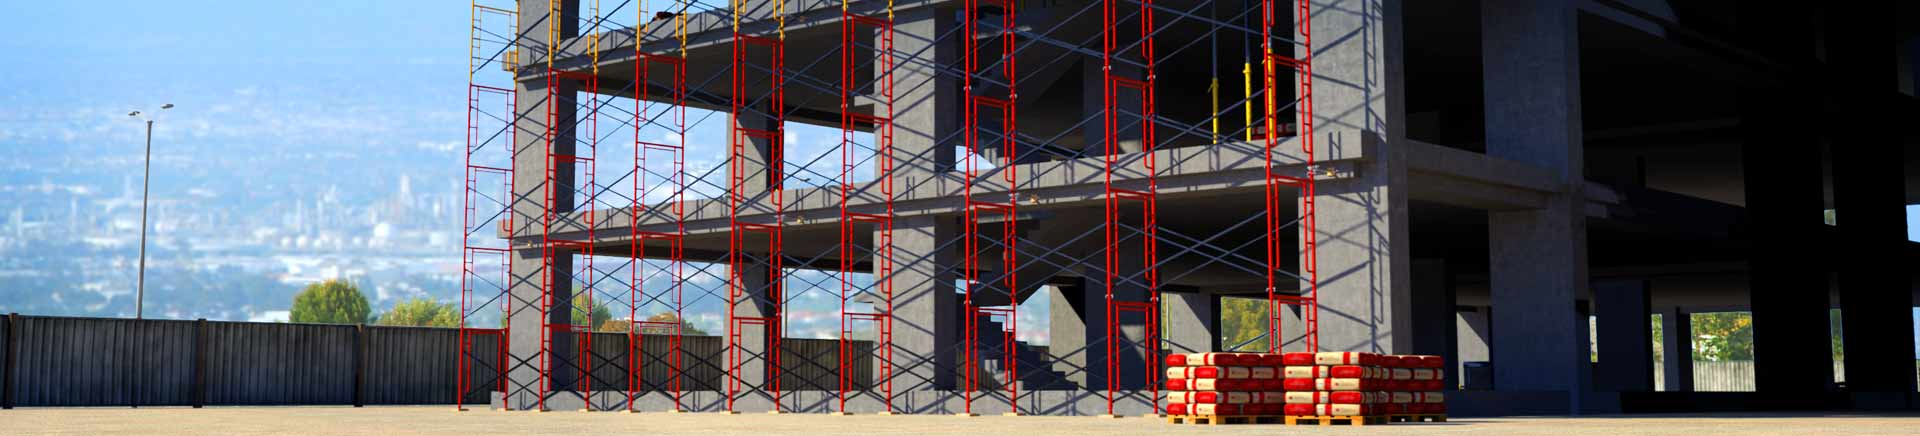 Scaffold-and-Shoring-Testing-r2-1